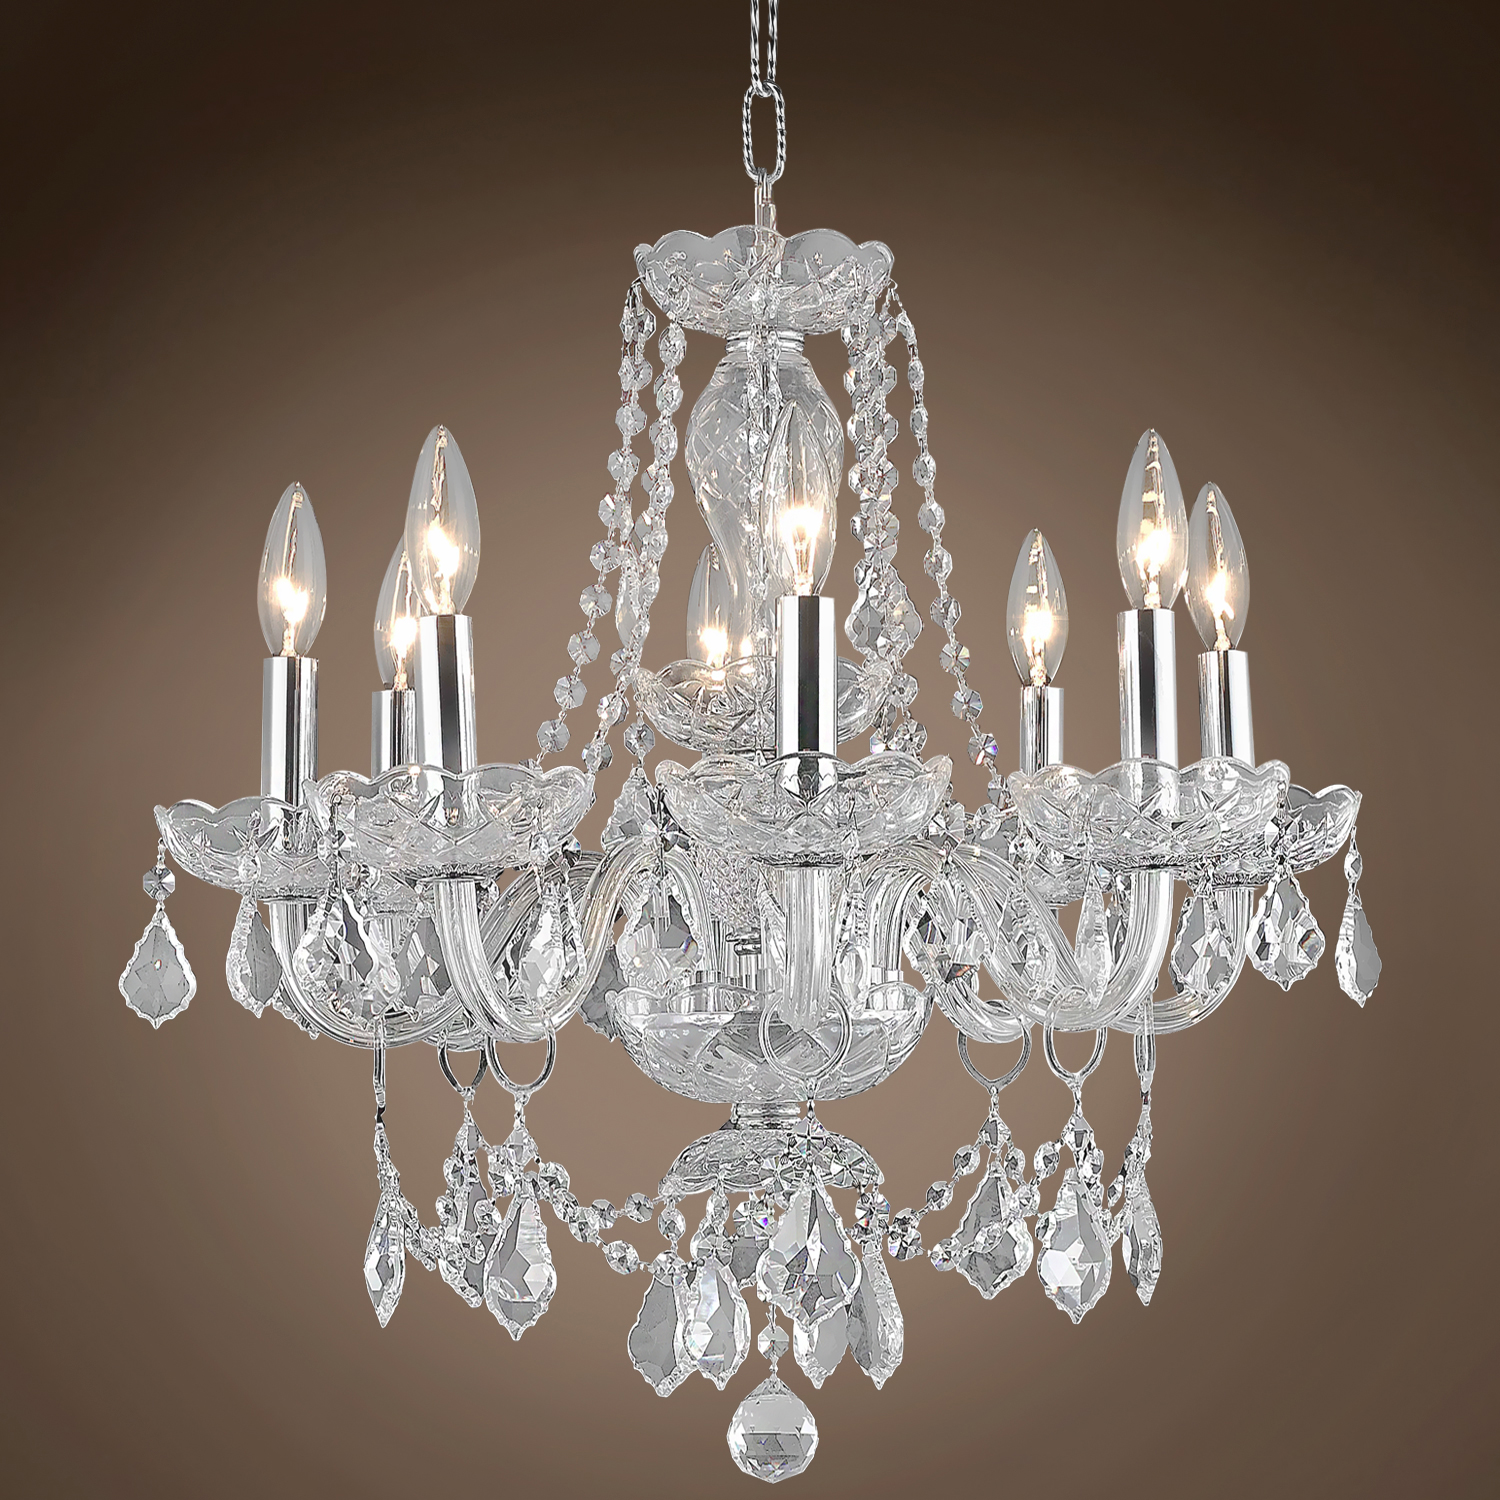 Joshua Marshal 701337 Victorian Design 8 Light 20